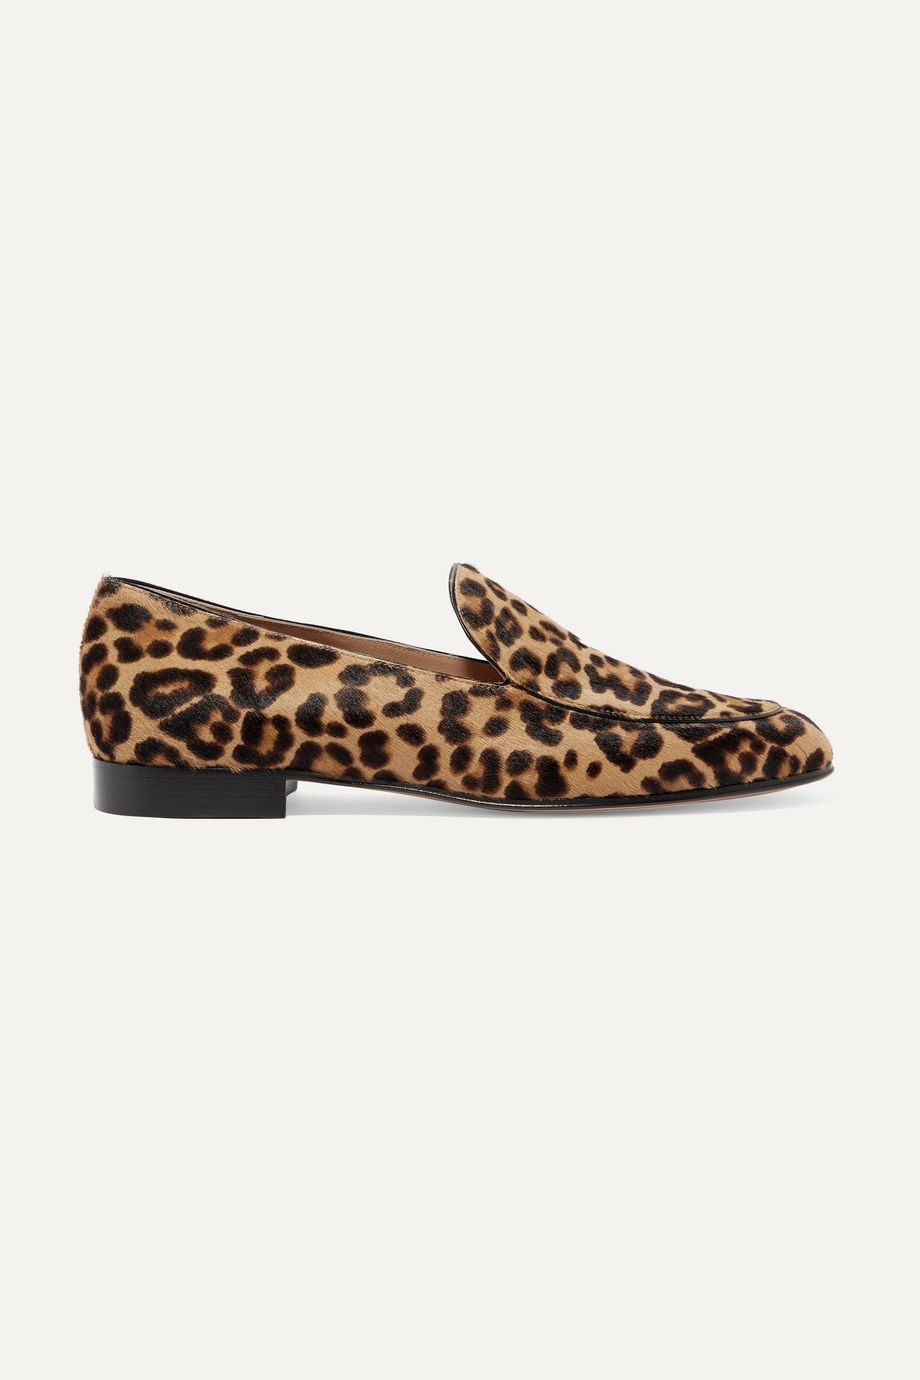 Gianvito Rossi Leopard-print calf hair loafers